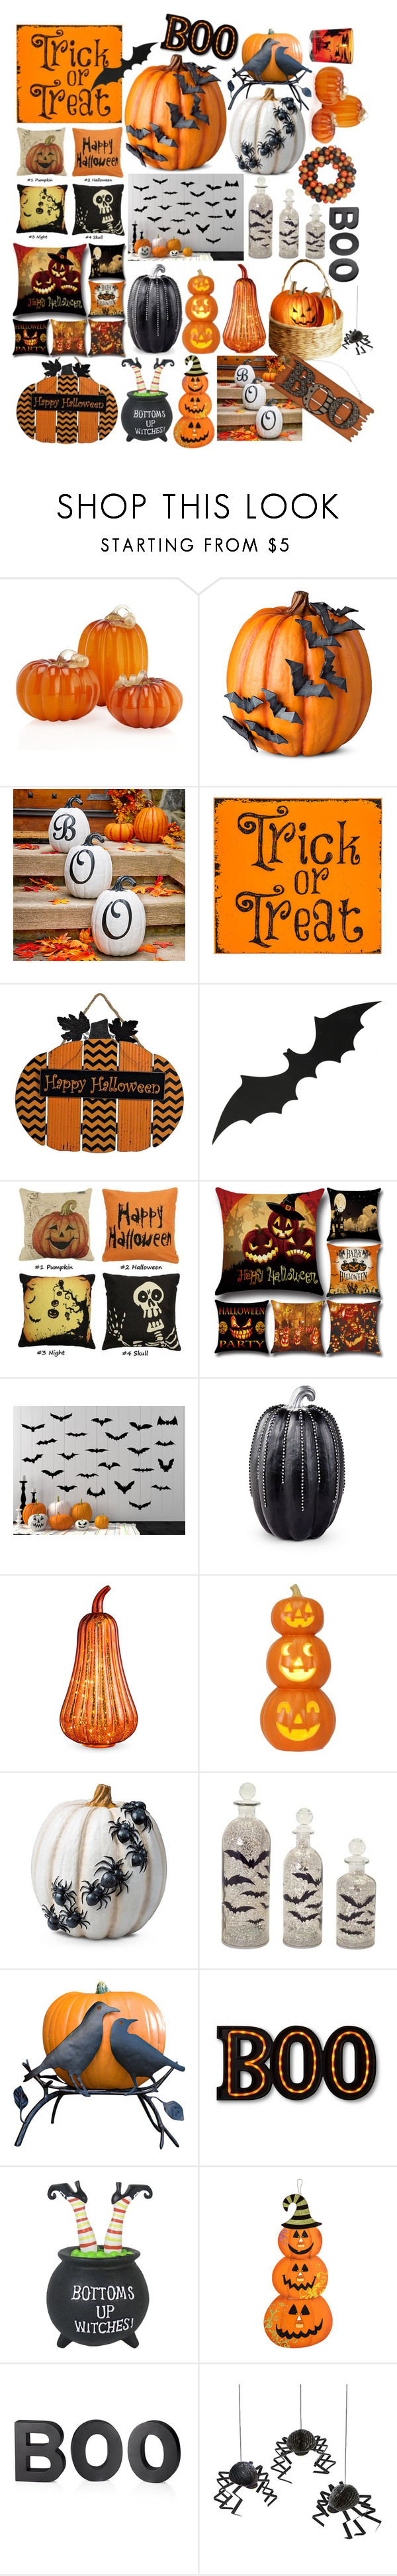 """""""Halloween decor"""" by marias1808 ❤ liked on Polyvore featuring interior, interiors, interior design, home, home decor, interior decorating, Improvements, Melrose International, Crate and Barrel and Meri Meri"""